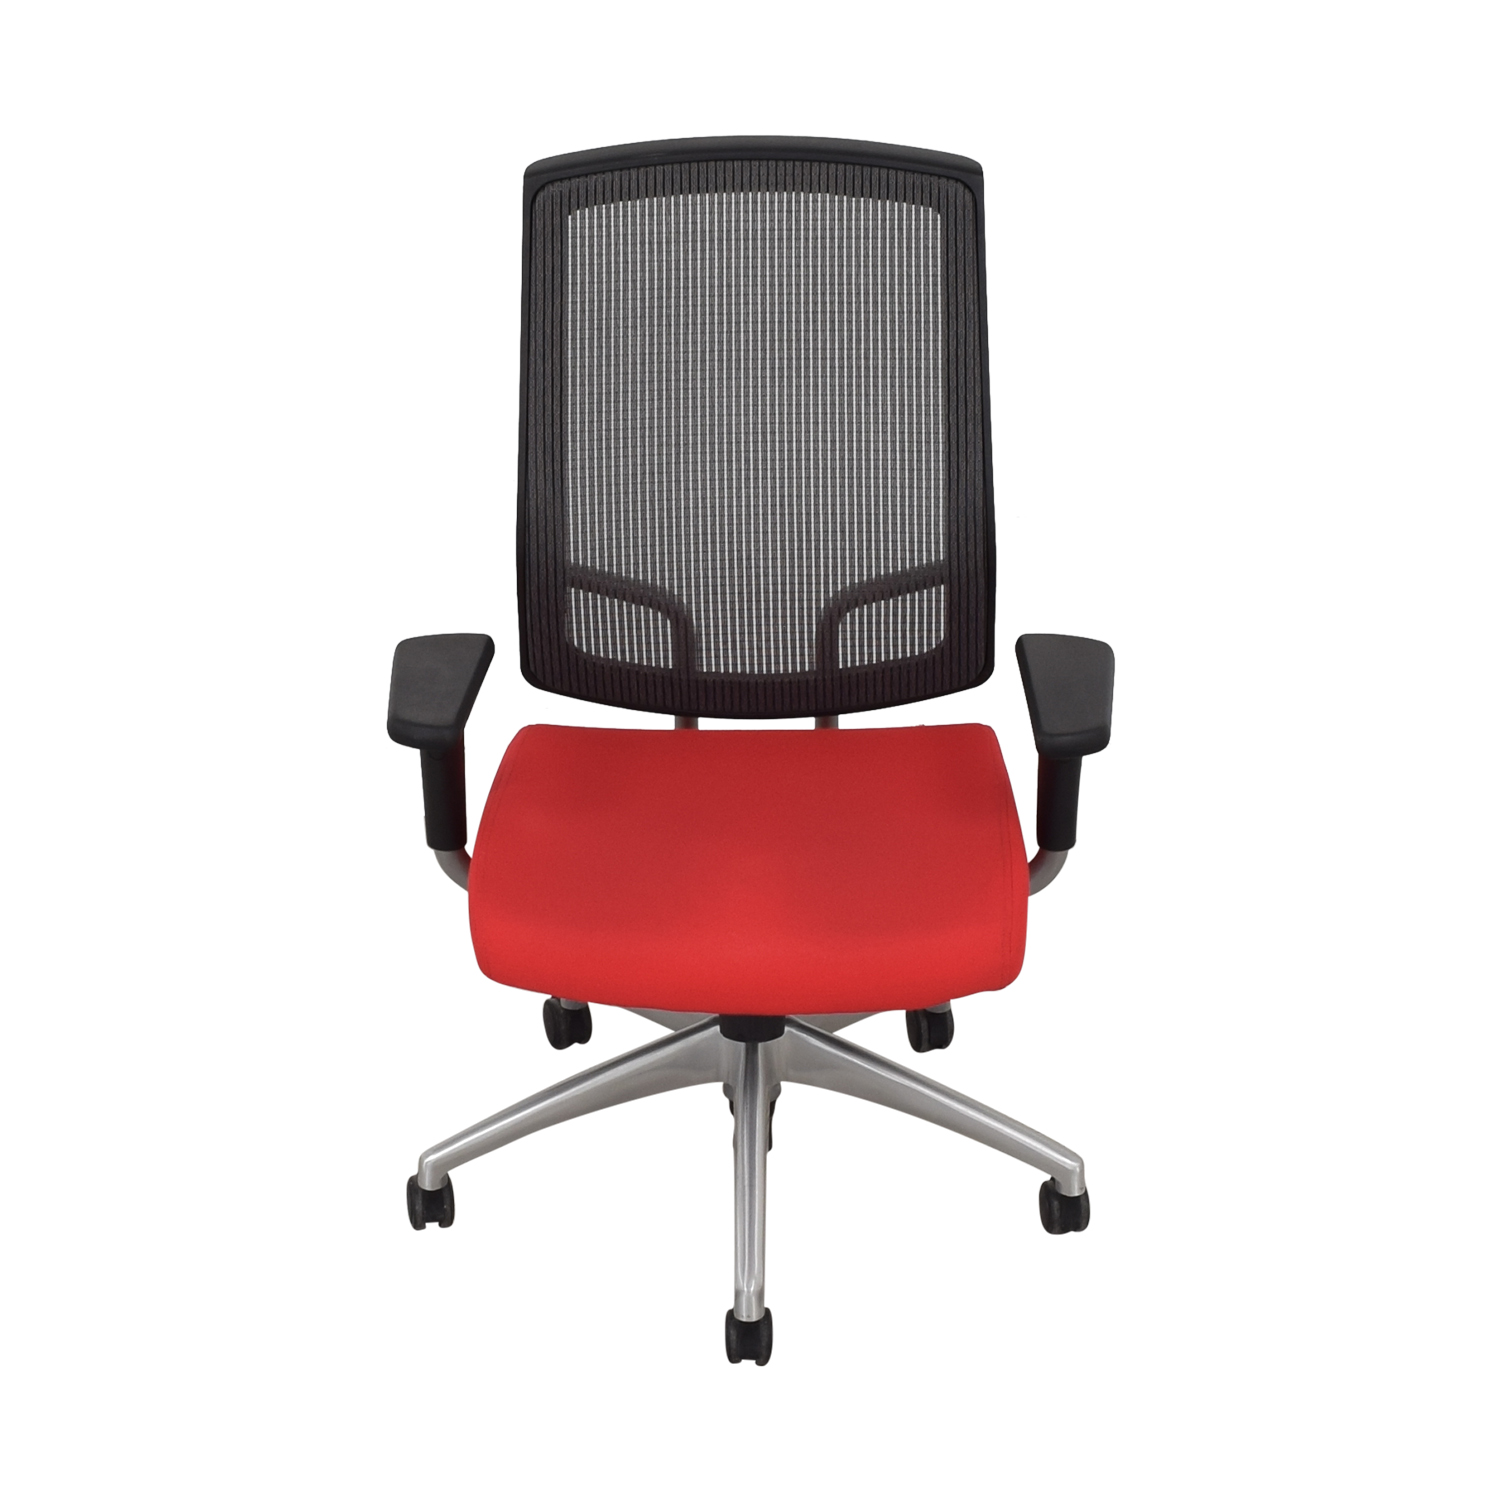 SitOnIt SitOnIt Focus High Back Office Chair used